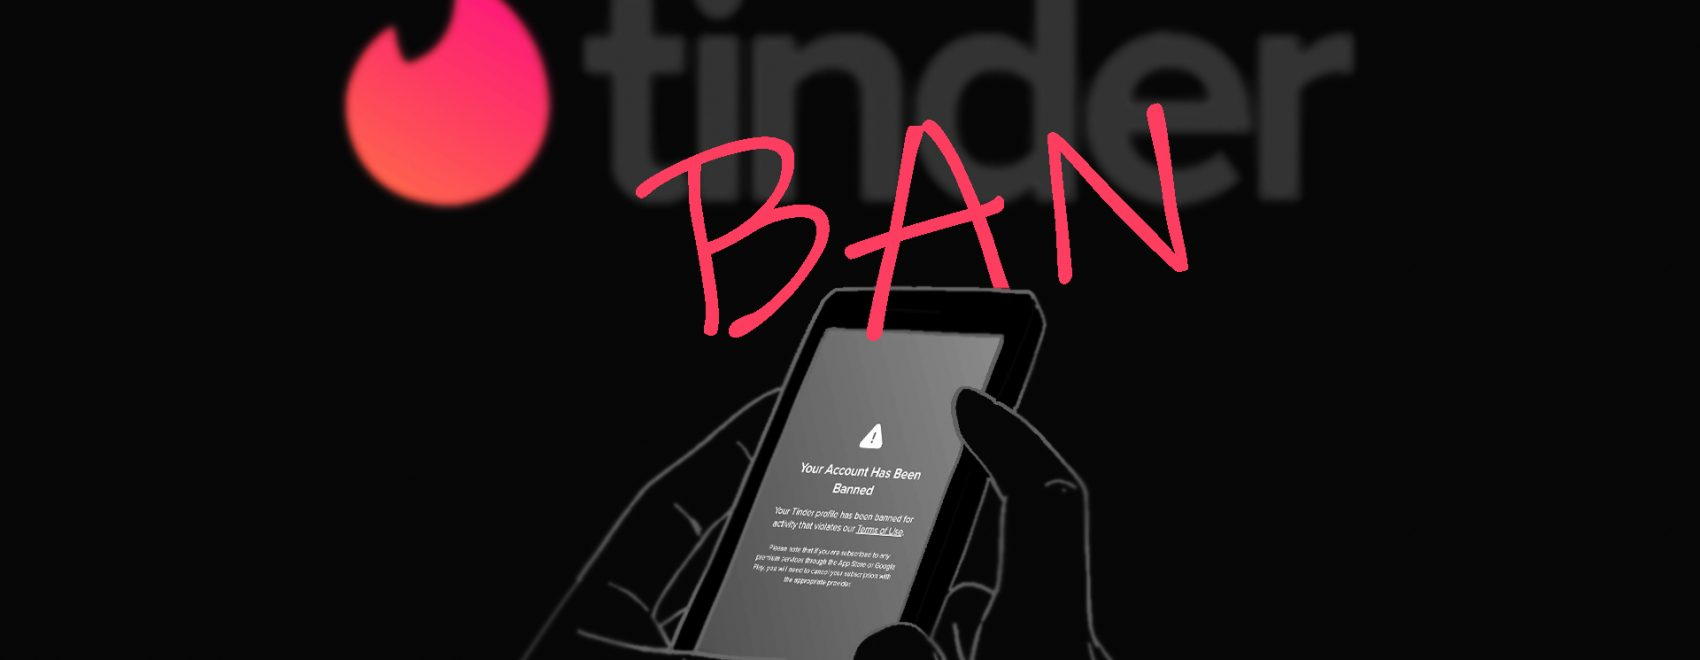 Tinder without phone number register How to